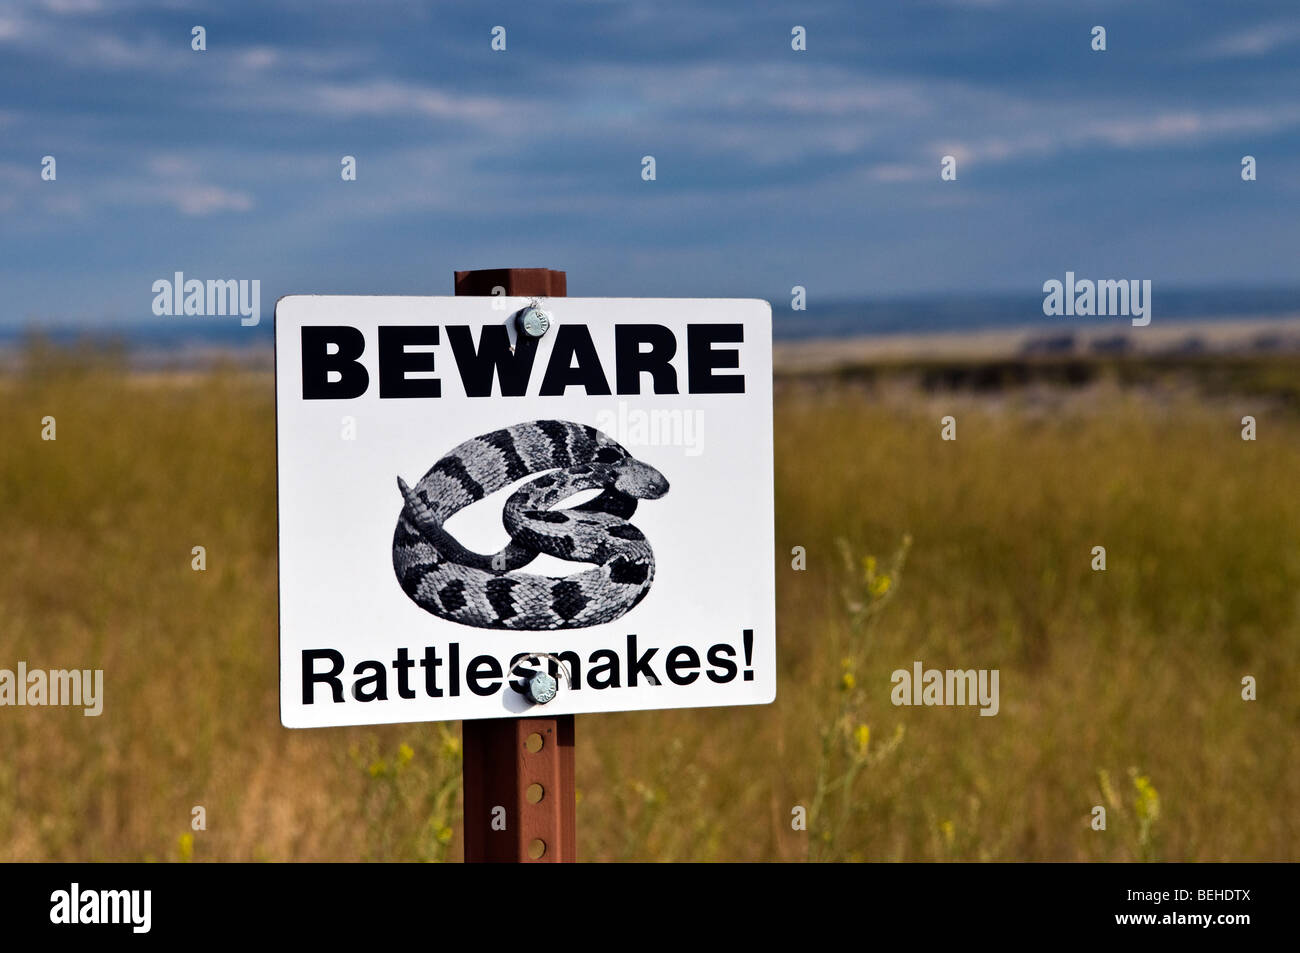 Beware rattlesnakes caution sign in the South Dakota mid-west grasslands - Stock Image